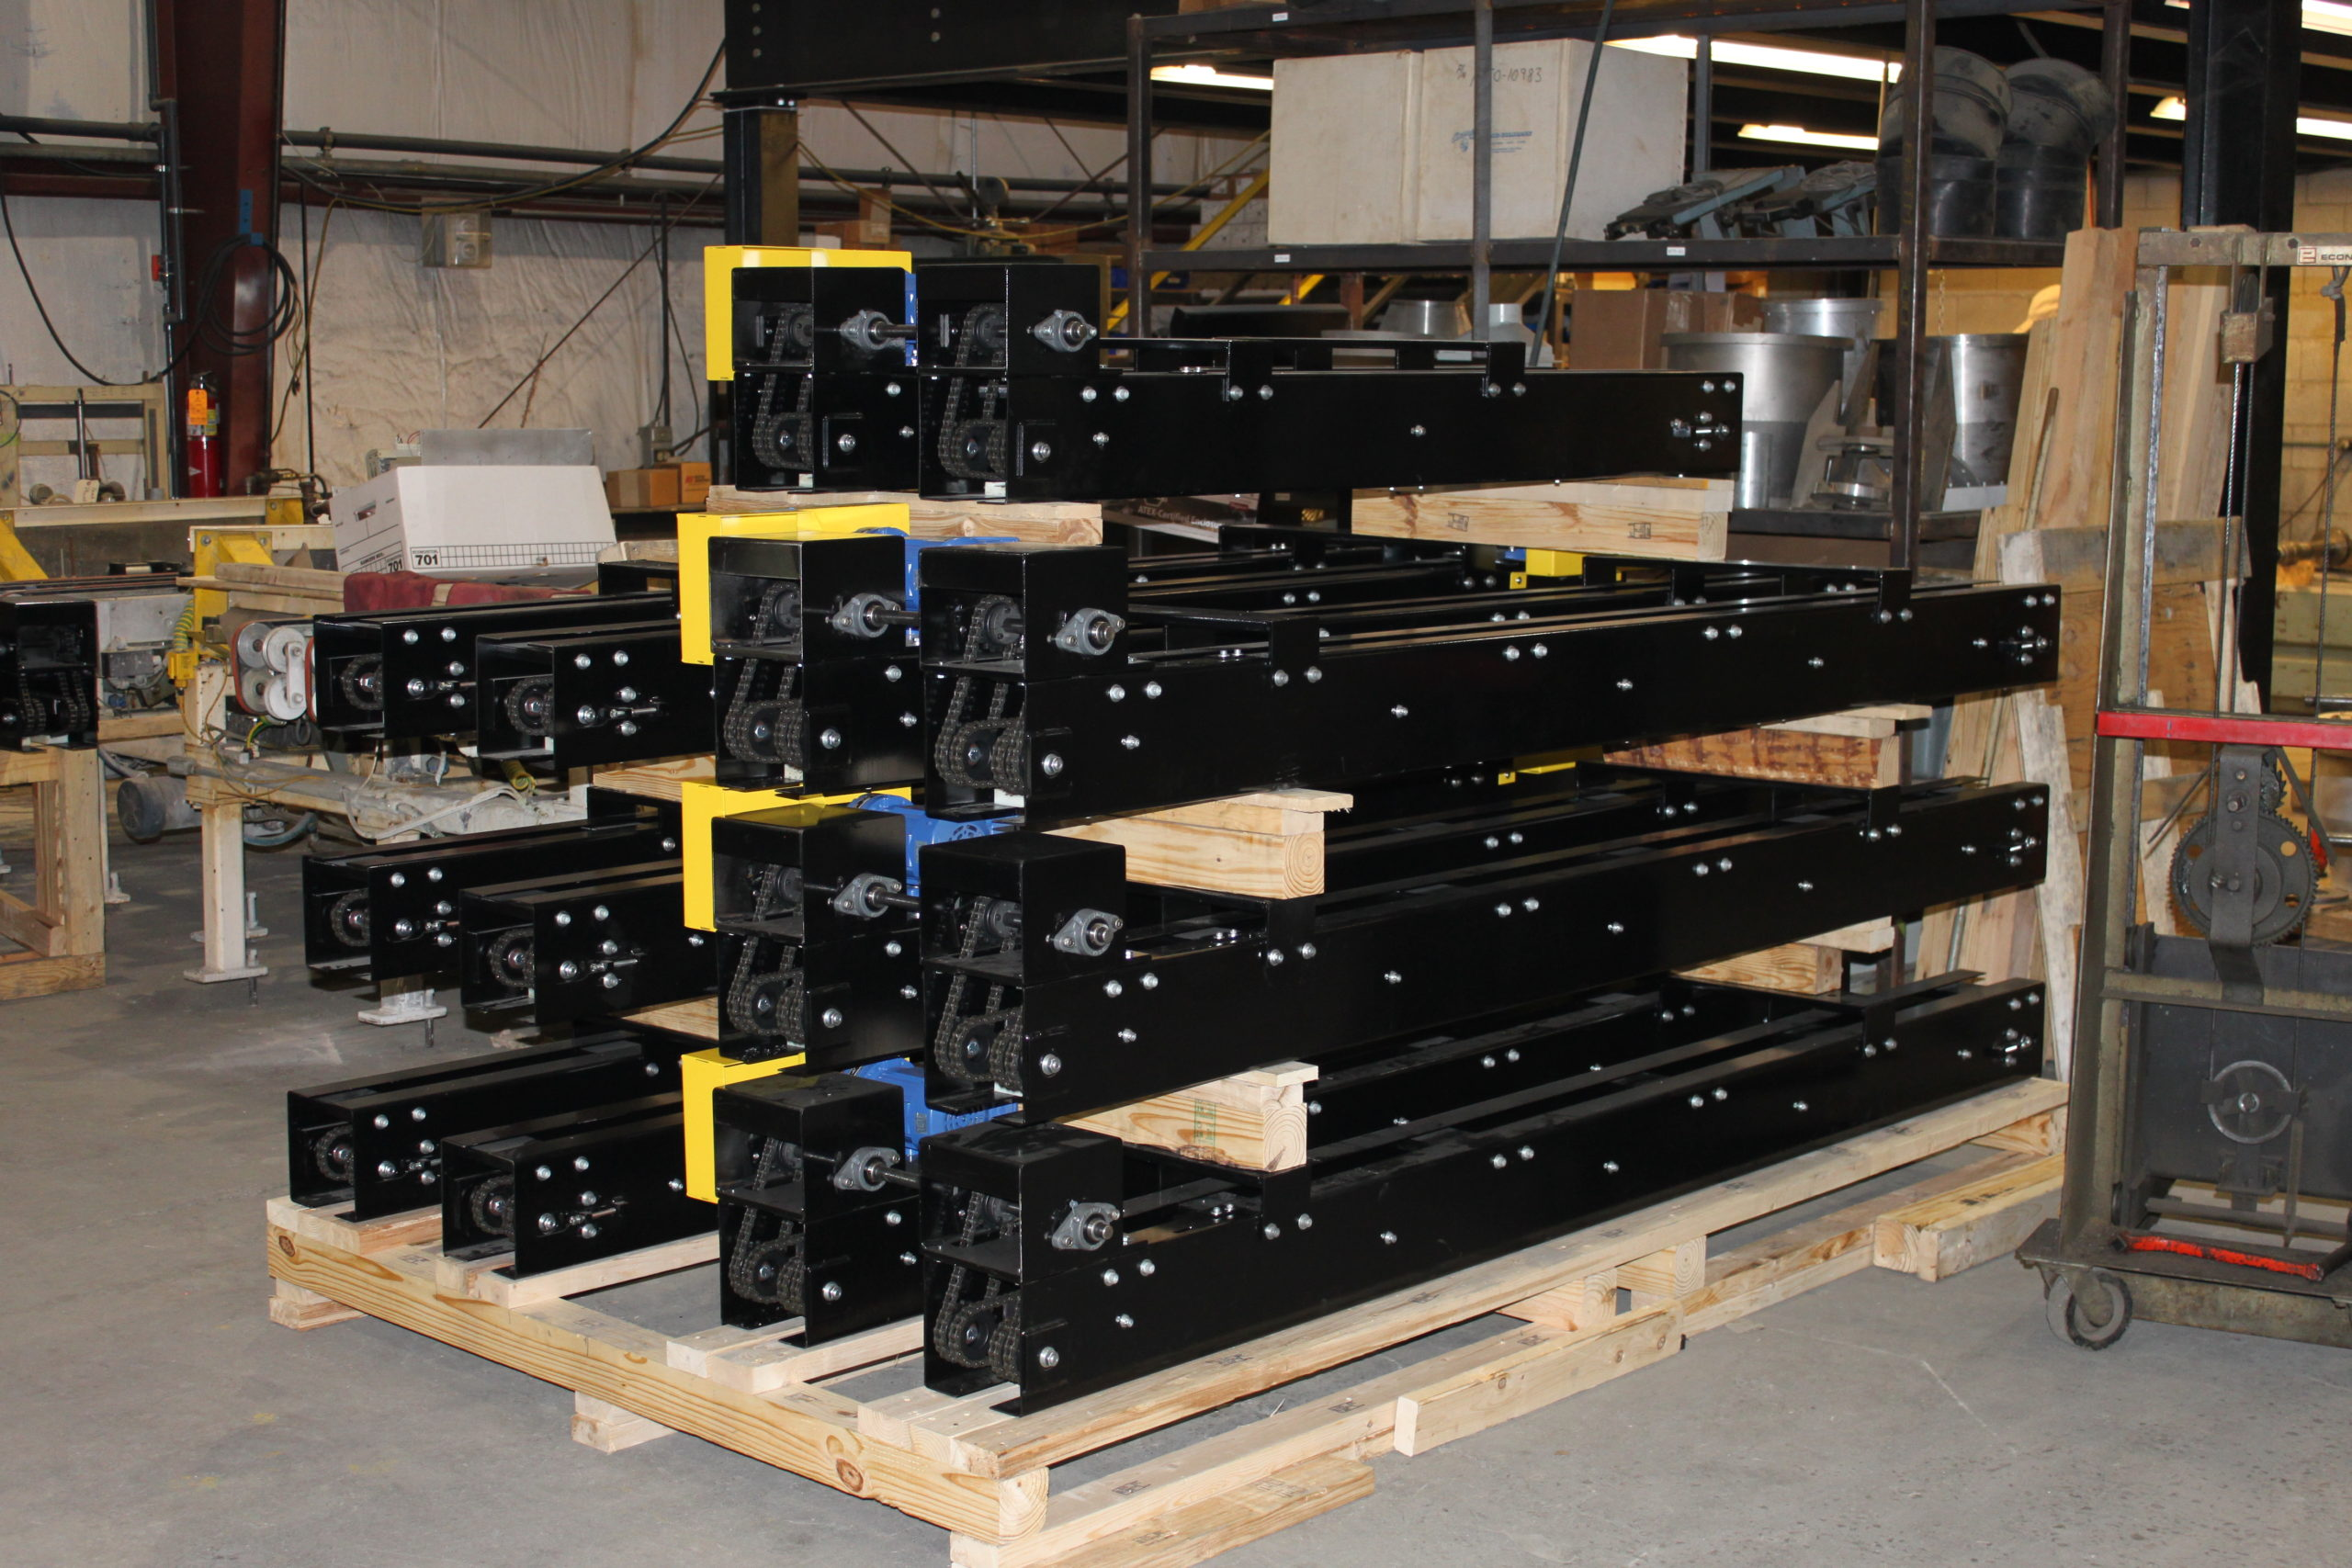 Custom/Specialized Conveyors(ultraviolet, etc.) - Glassline 2